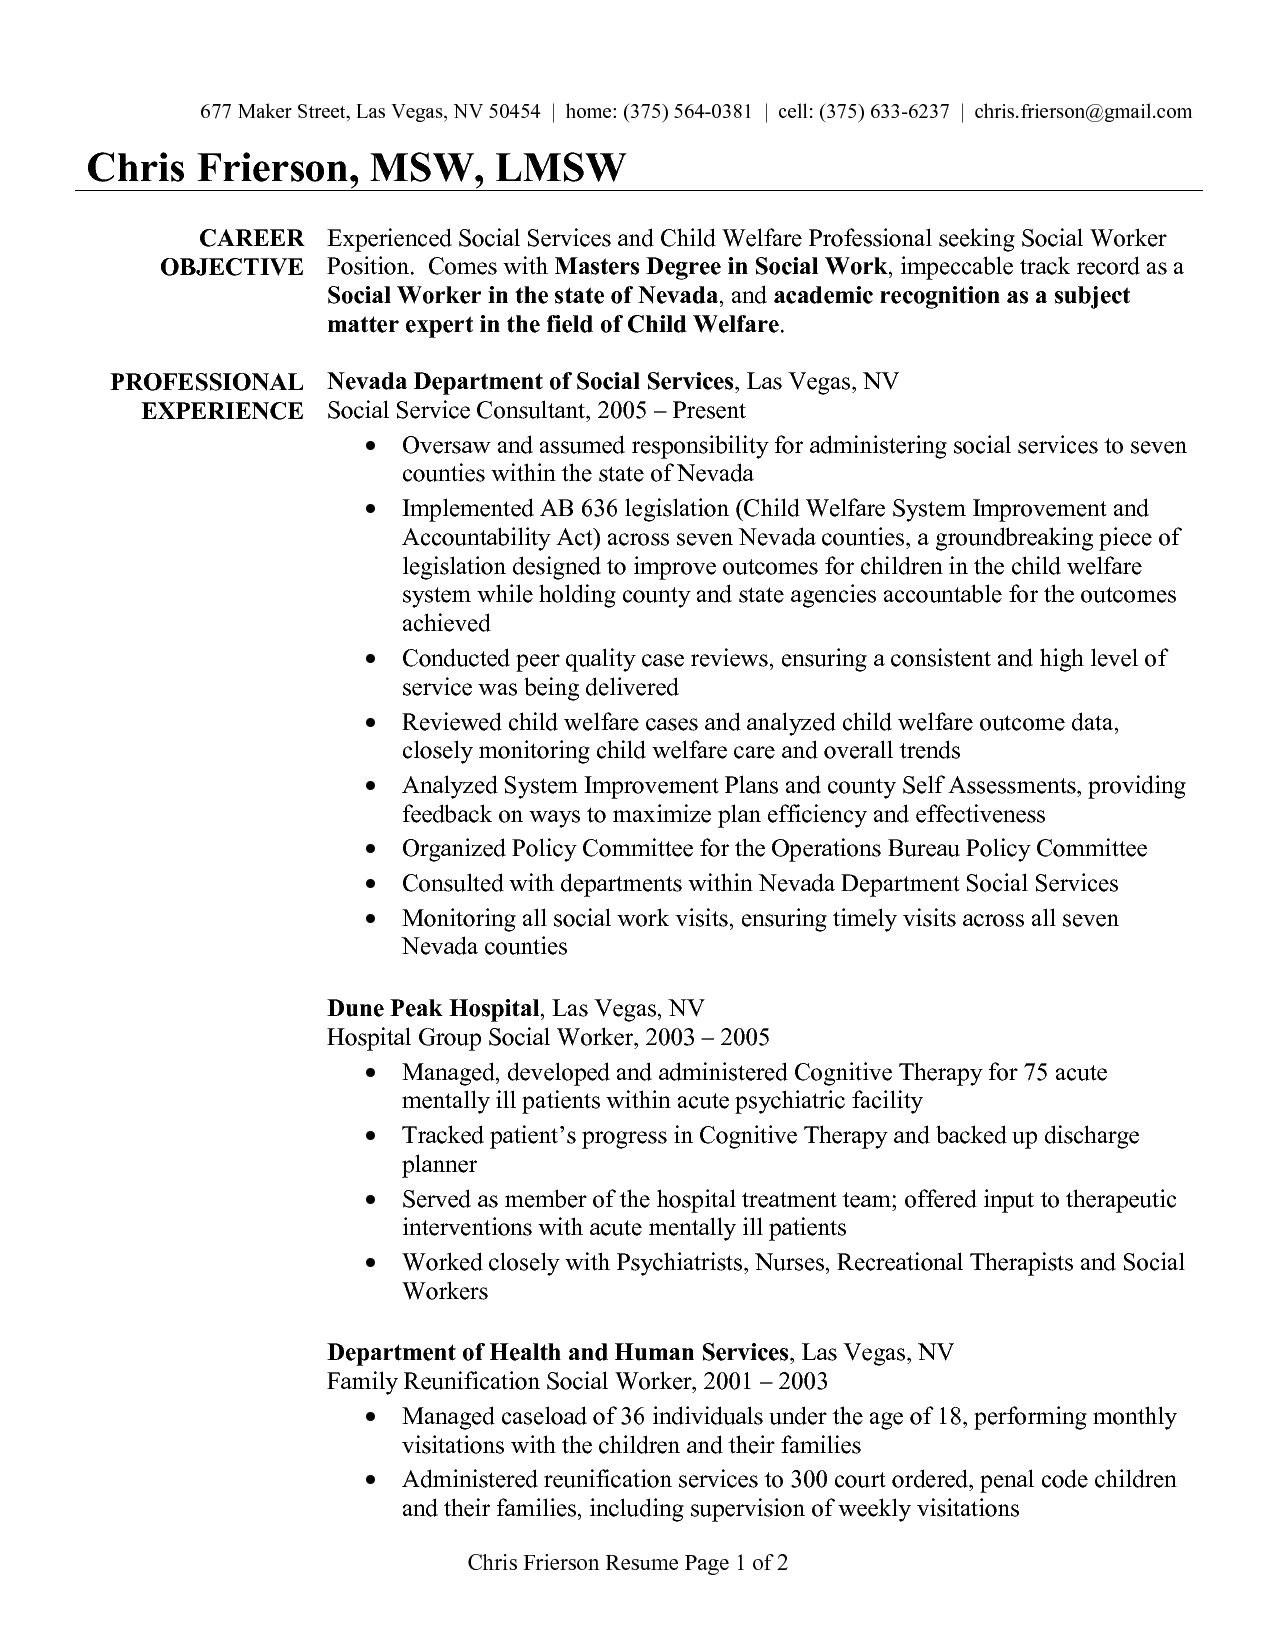 Resume Objective For Retail Social Work Resume Examples  Social Worker Resume Sample